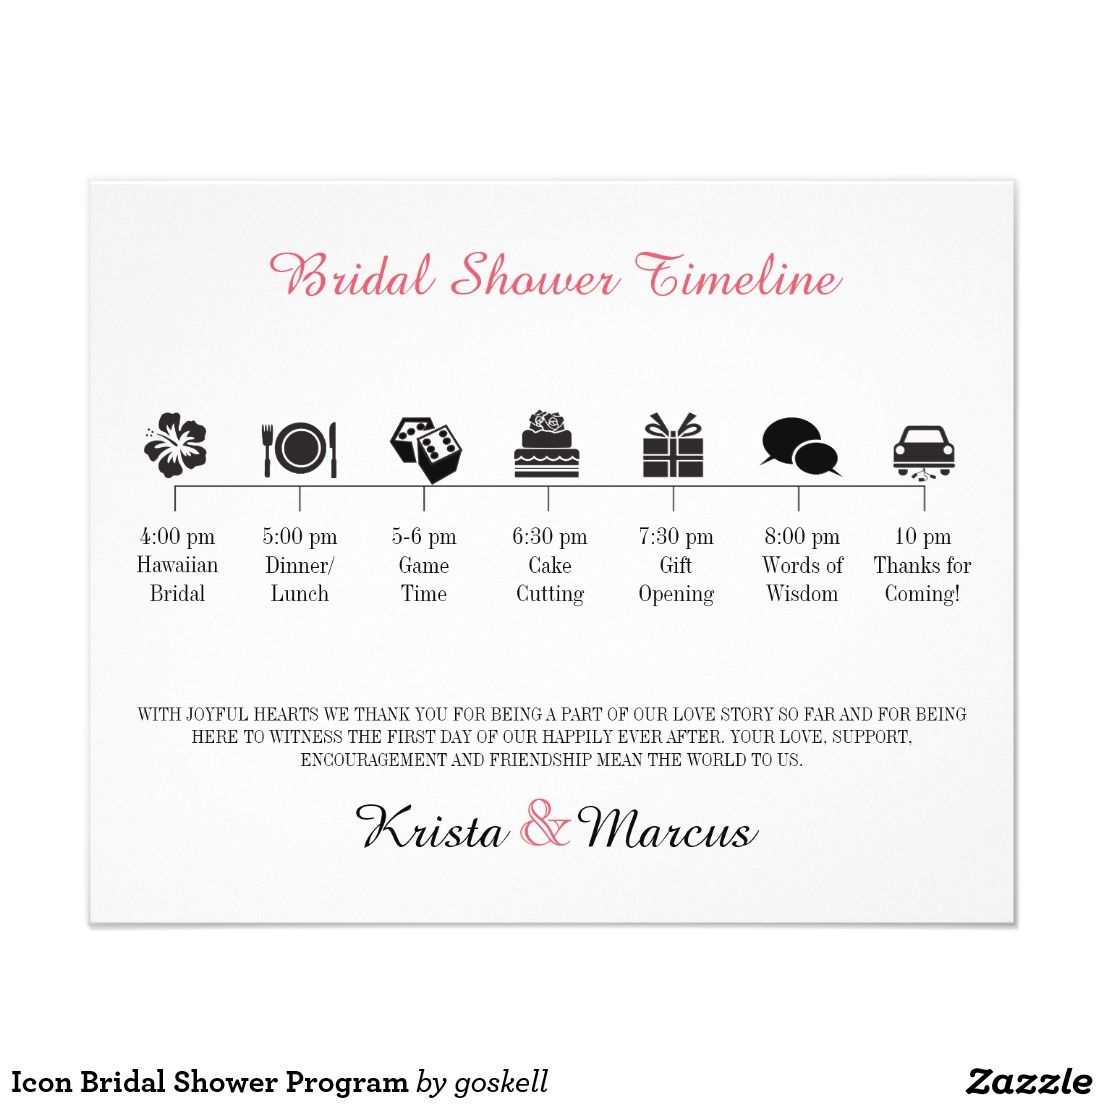 Icon Bridal Shower Program